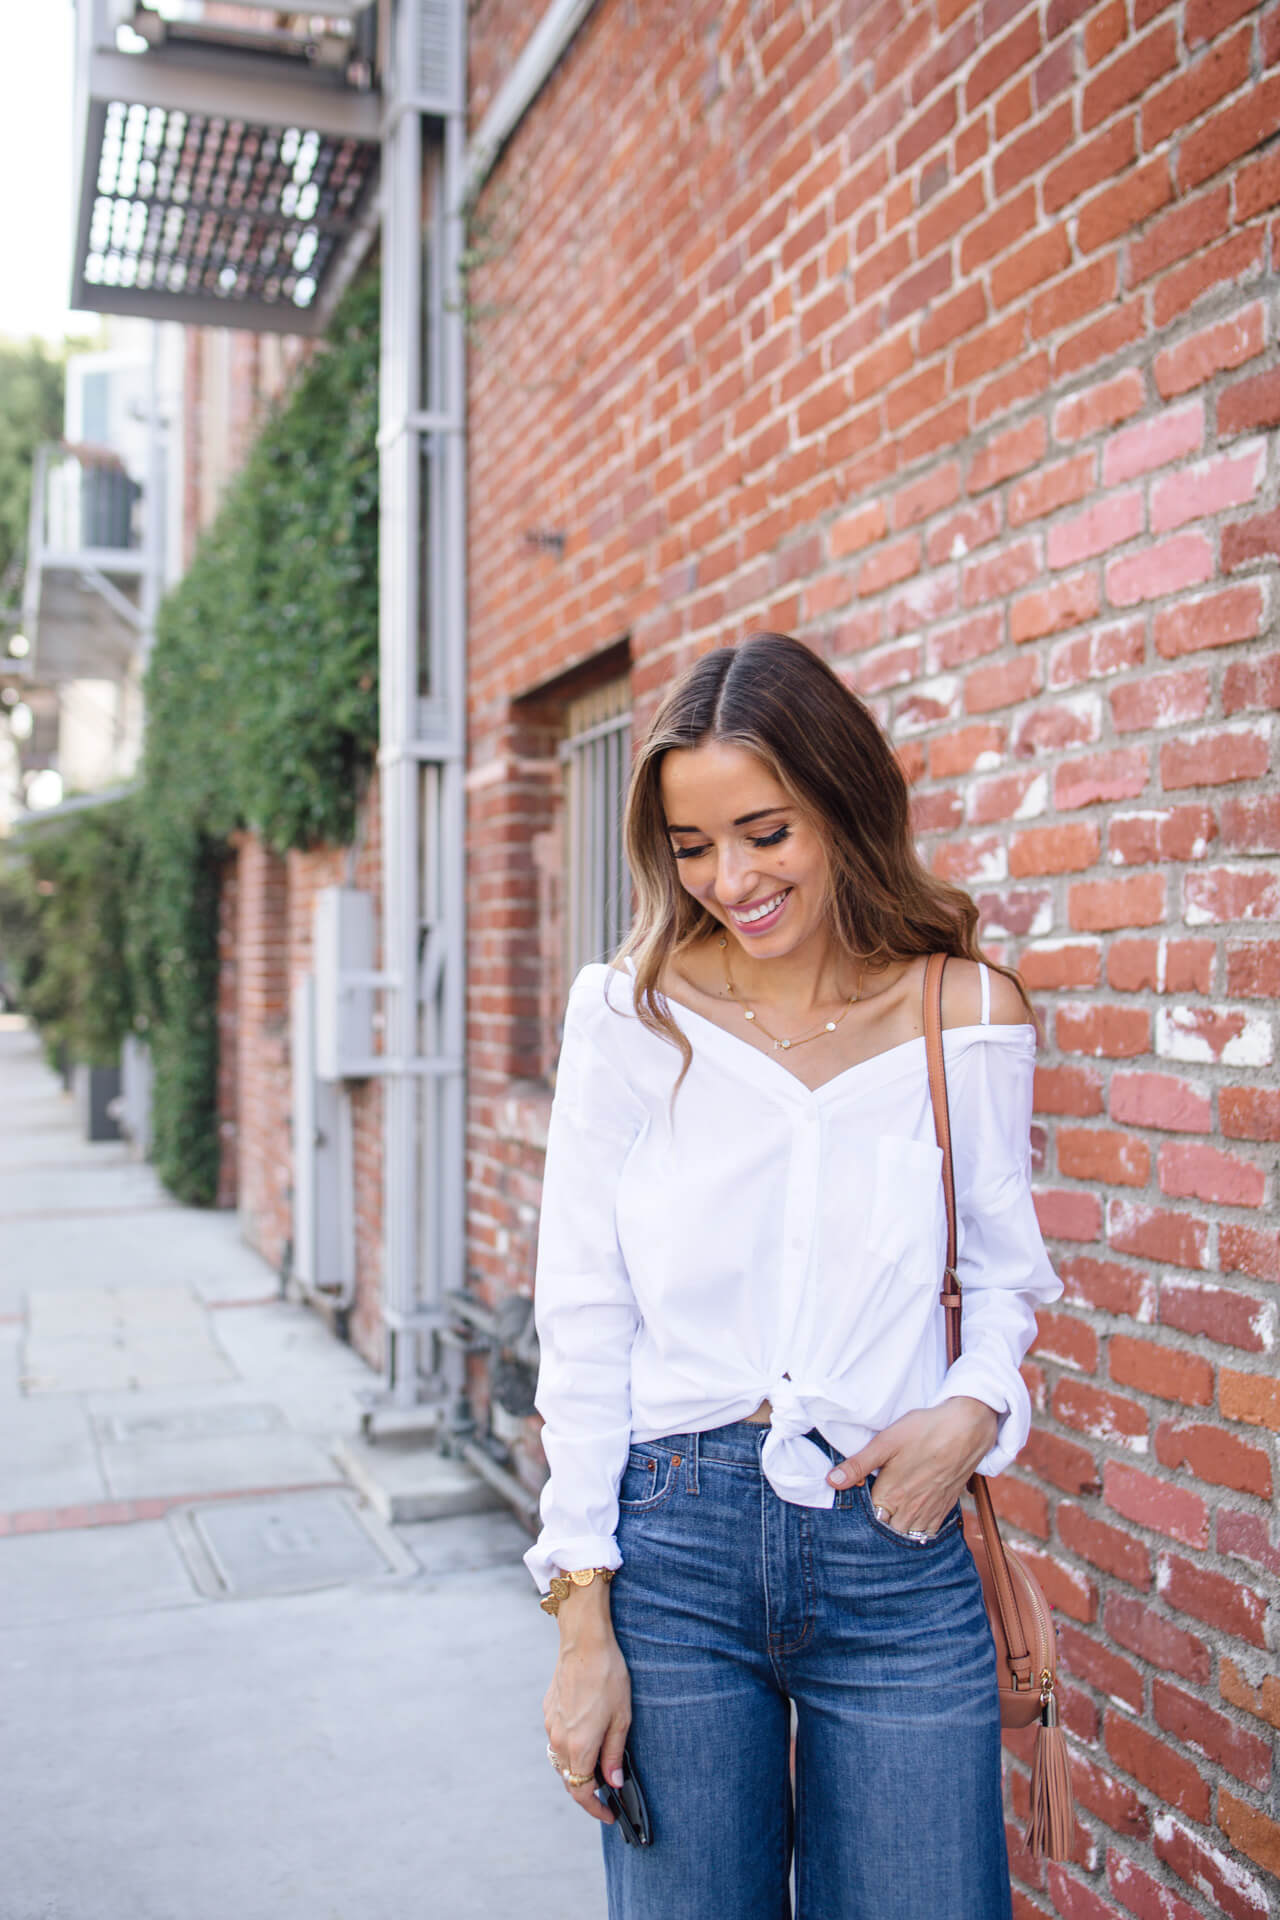 How to style a cute front tie shirt for fall | M Loves M - @marmar